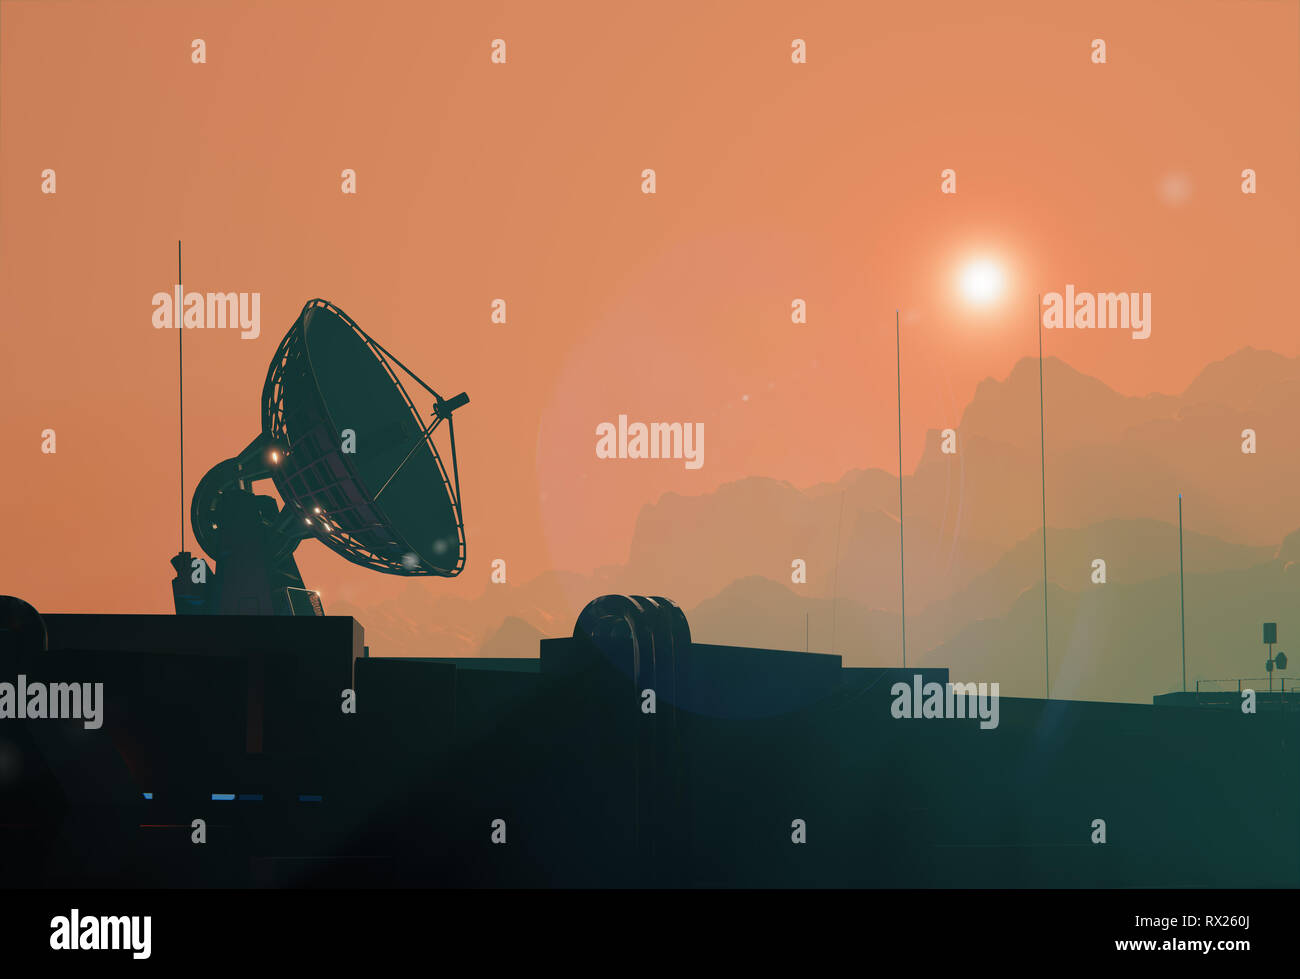 Satellite antenna dish silhouette of the space base on Mars, 3d illustration Stock Photo